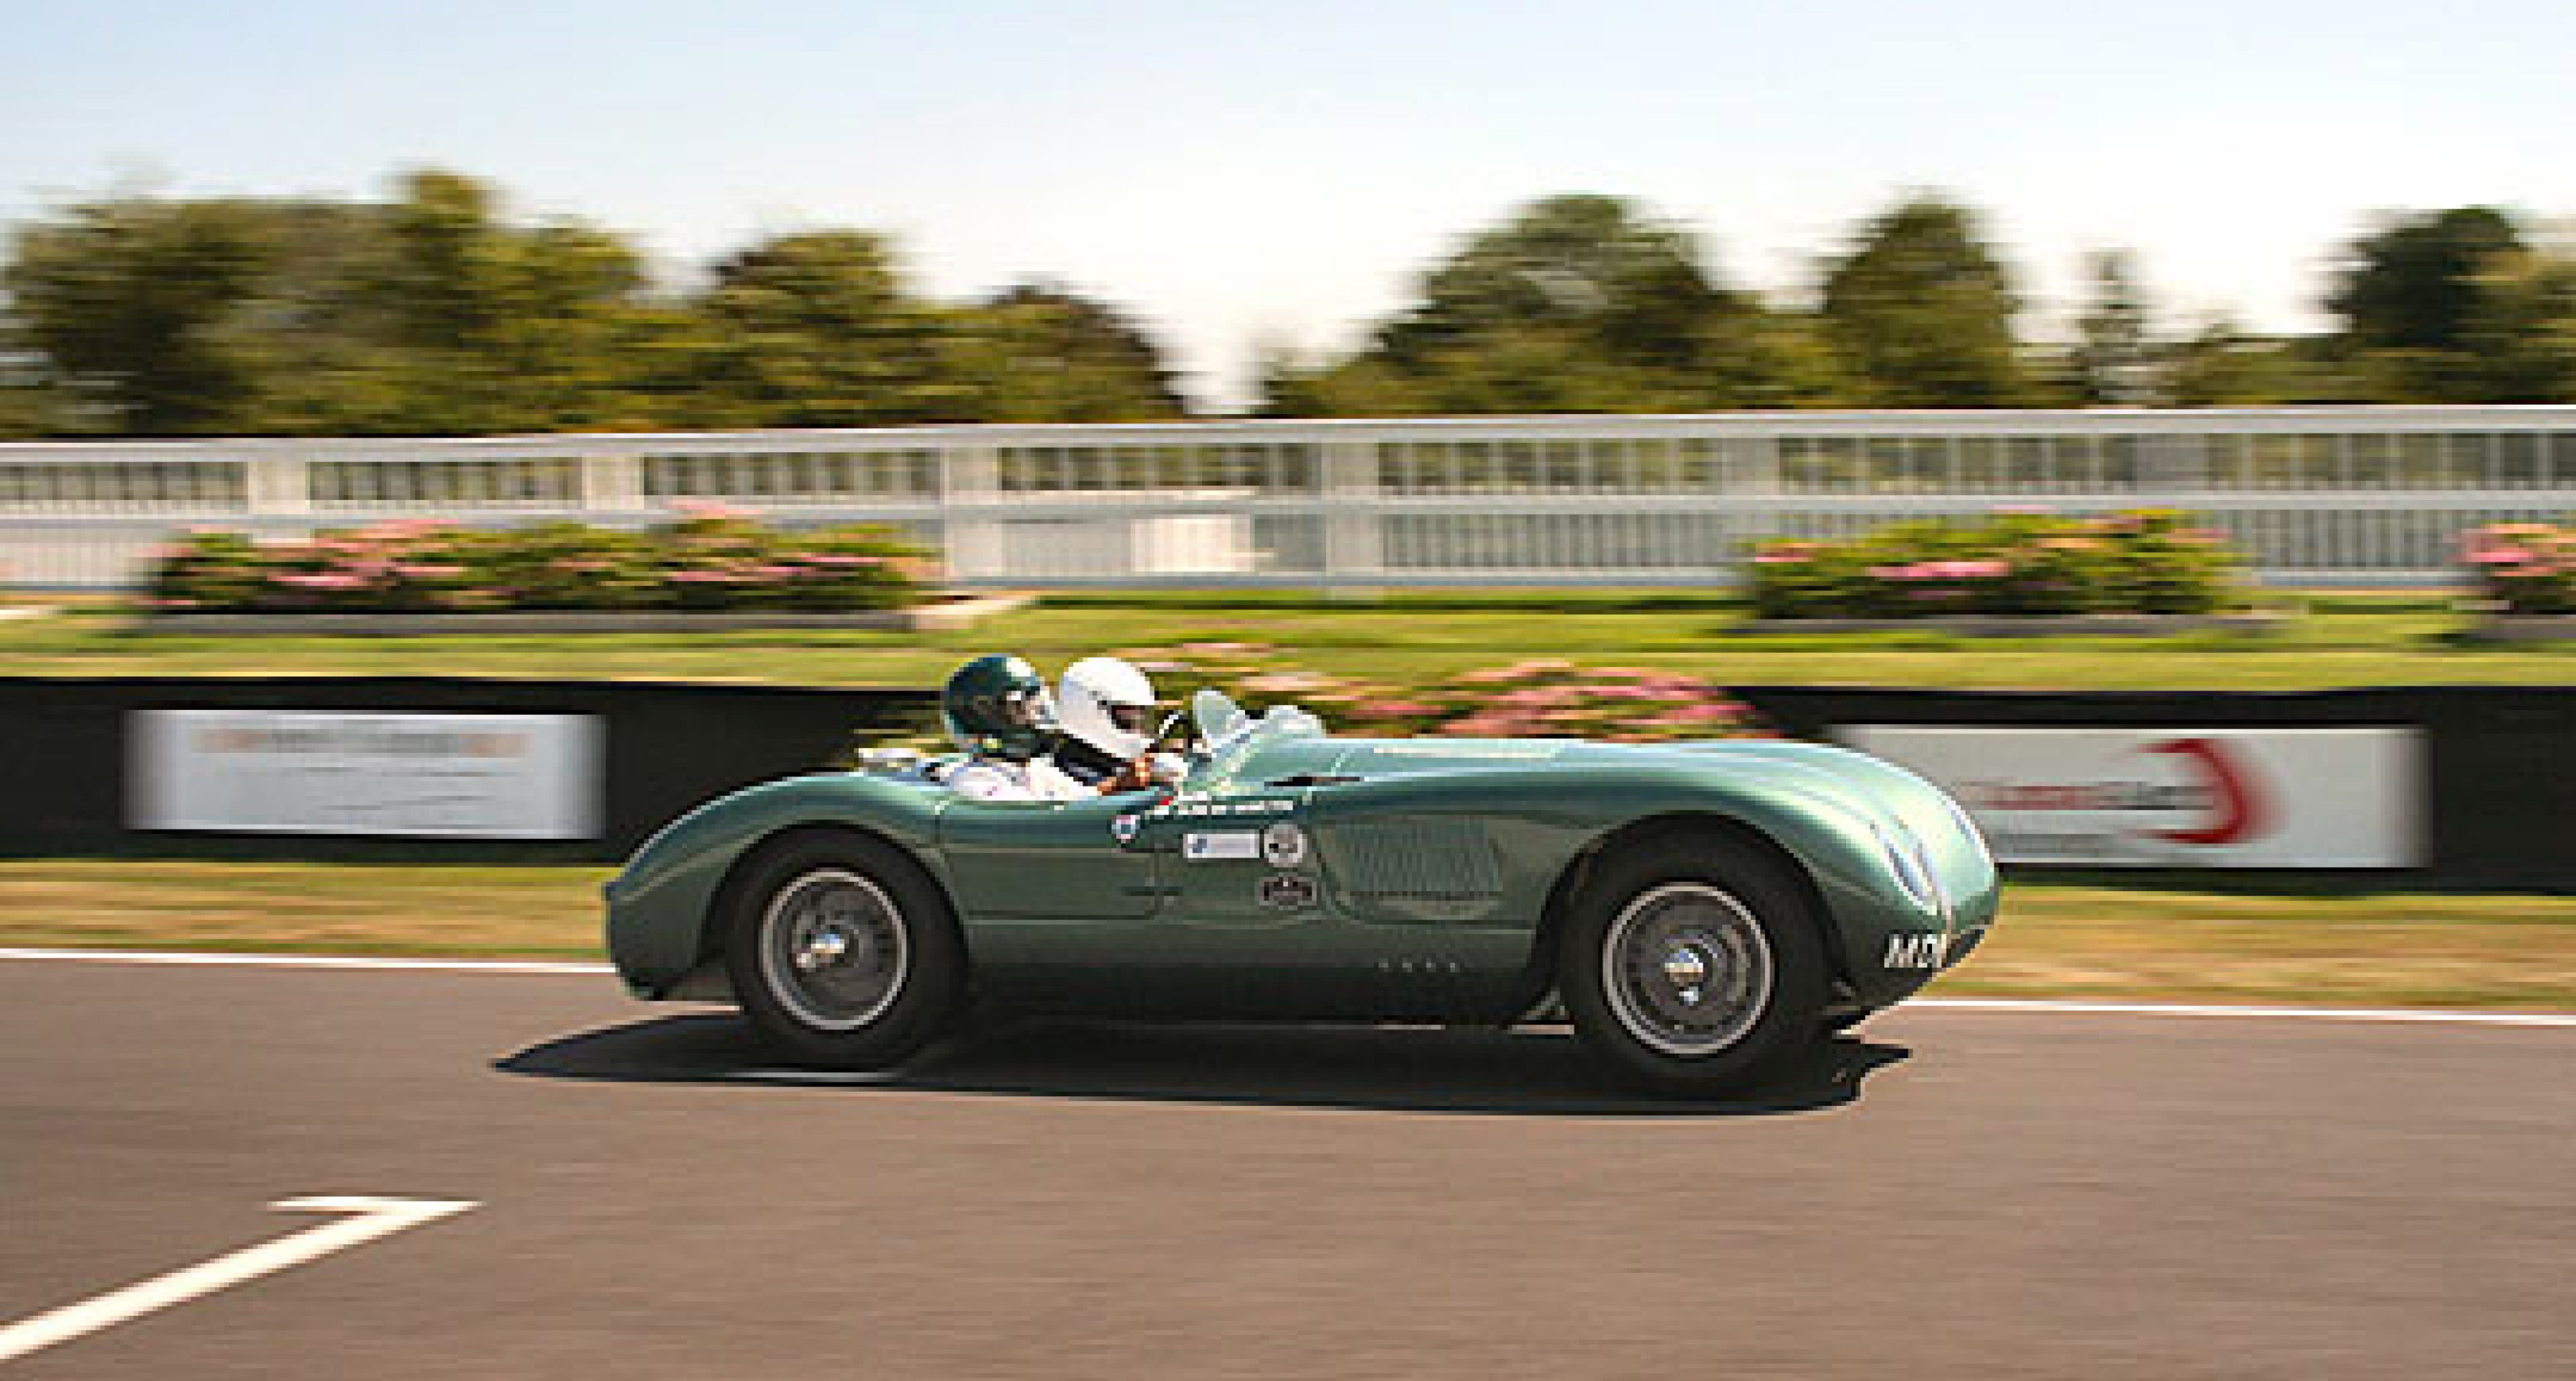 It's Goodwood Revival Time Again